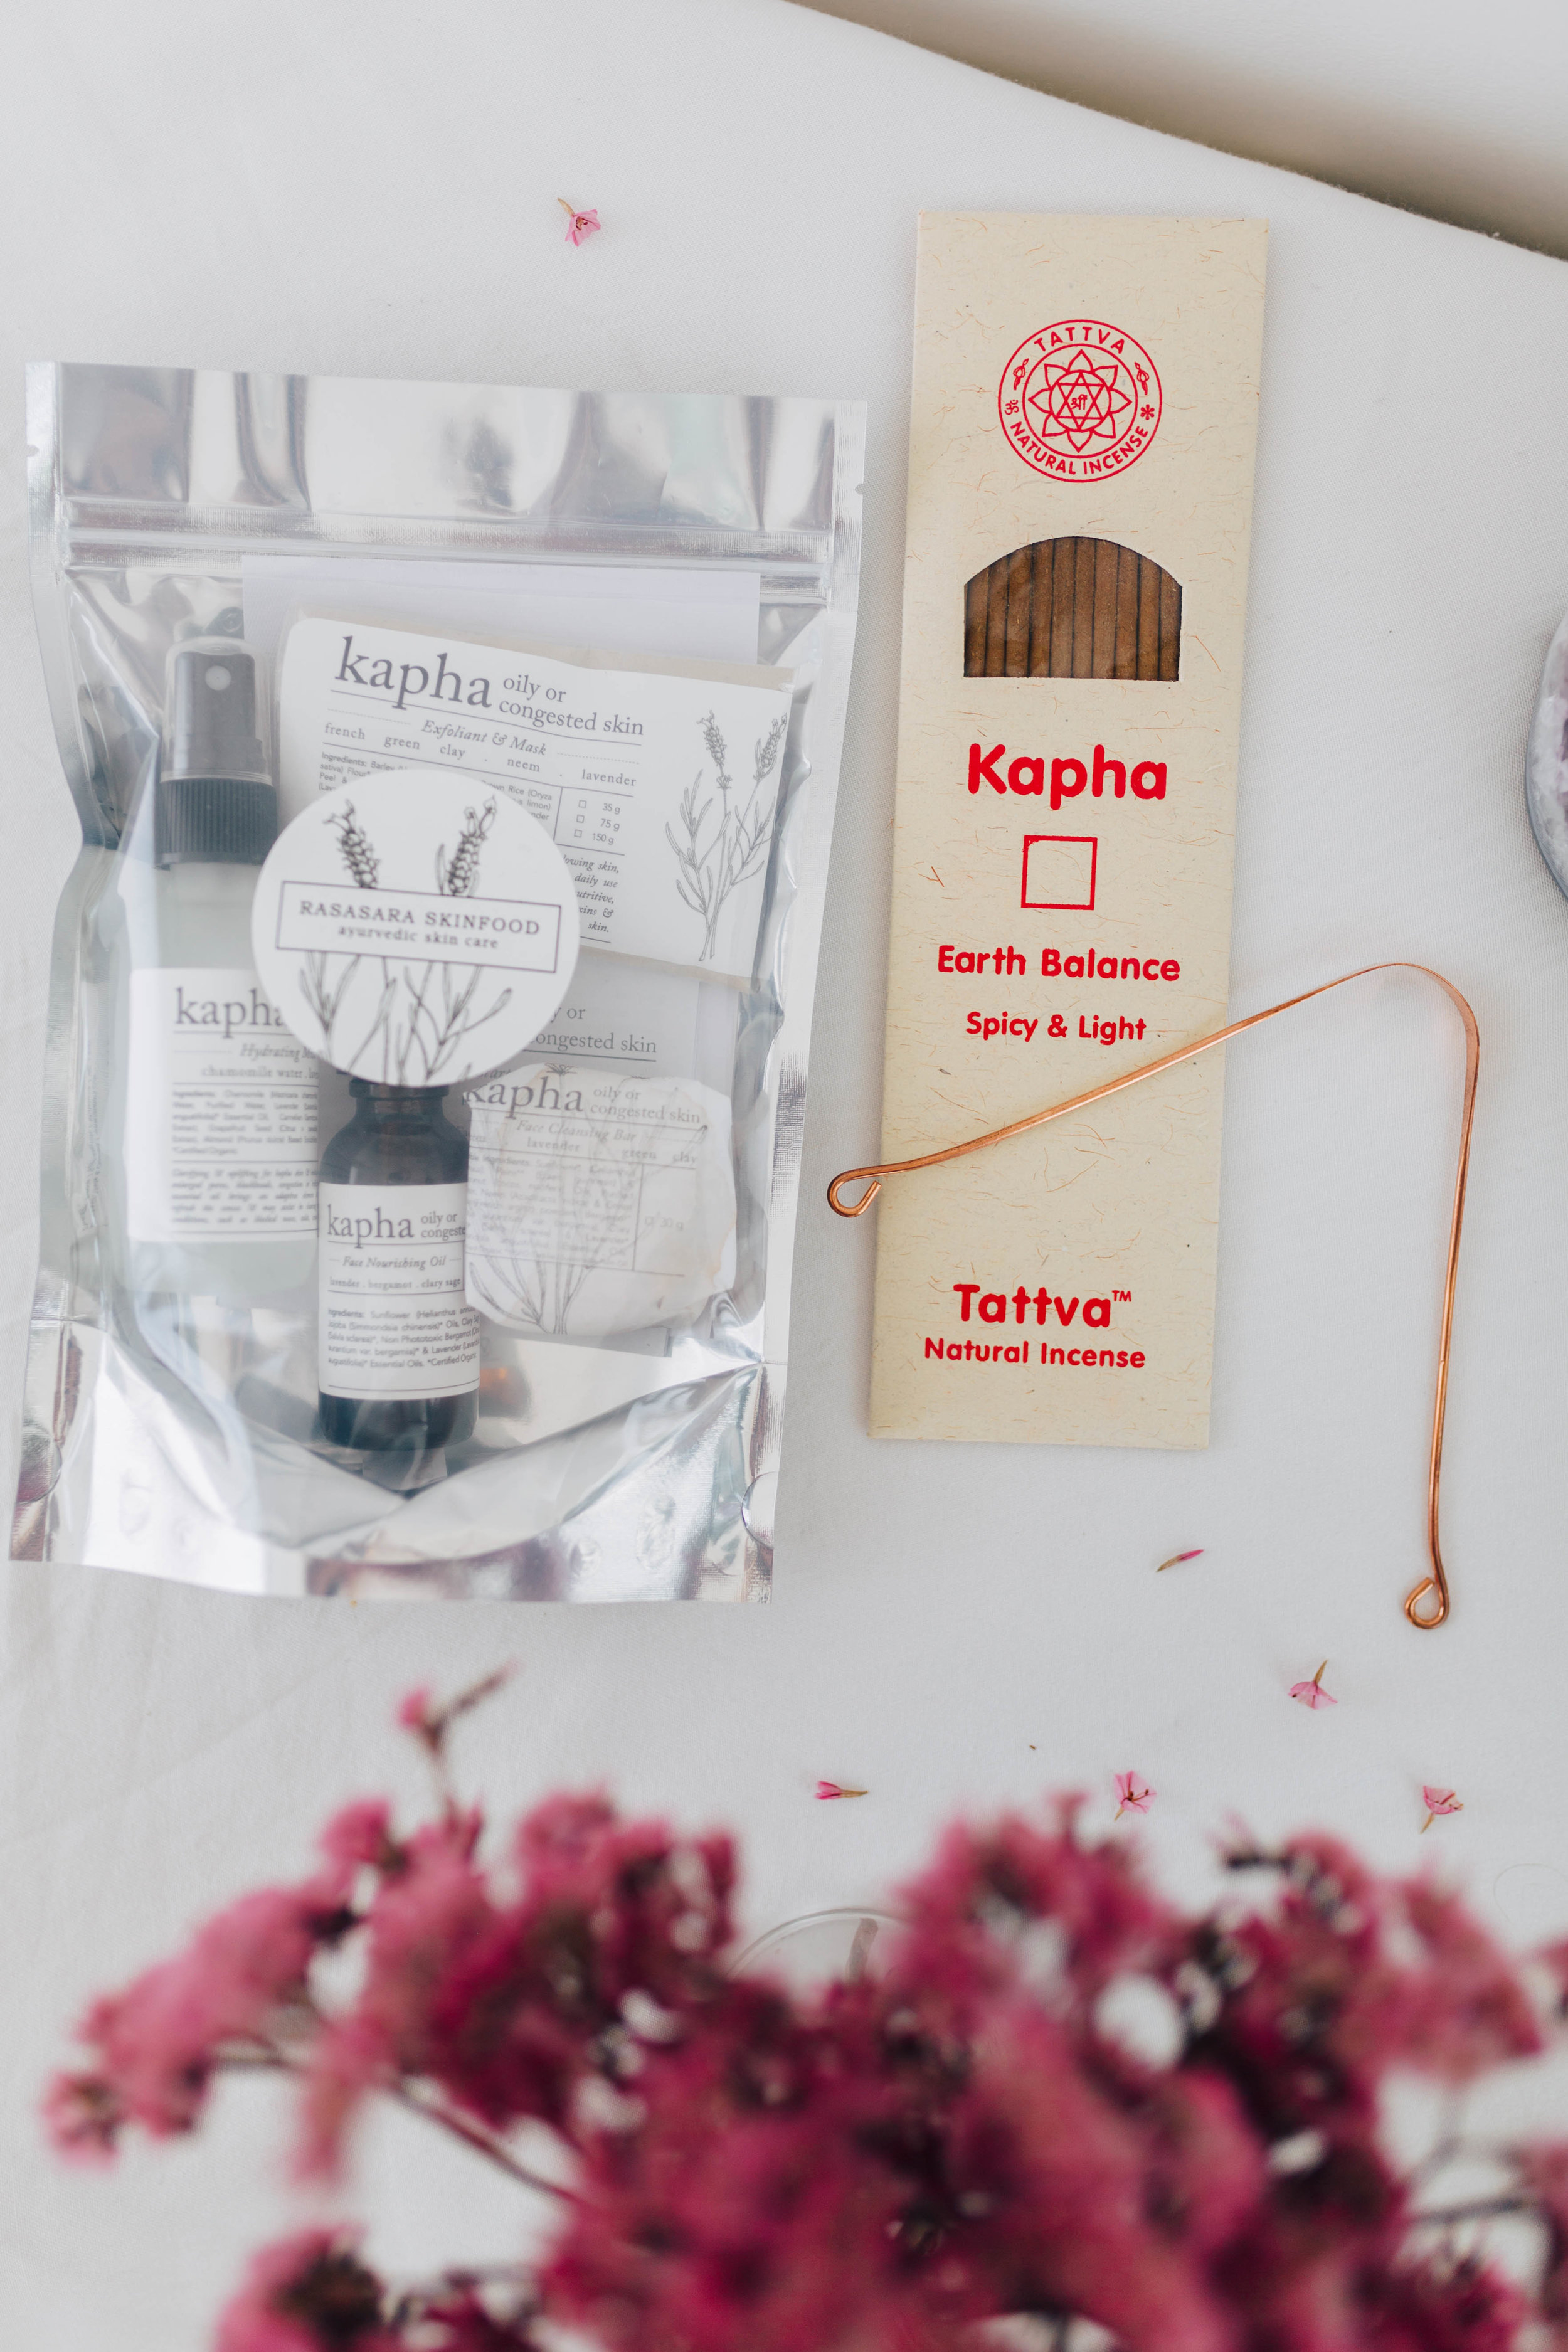 --- $100 gift ---- + Rasasara 'Kapha' starter kit with face cleanser, hydrating mist, moisturising oil, and exfoliator - for one who's skin in young, oily or congested (great for teenagers!) + Kapha incense + Copper Tongue Scraper